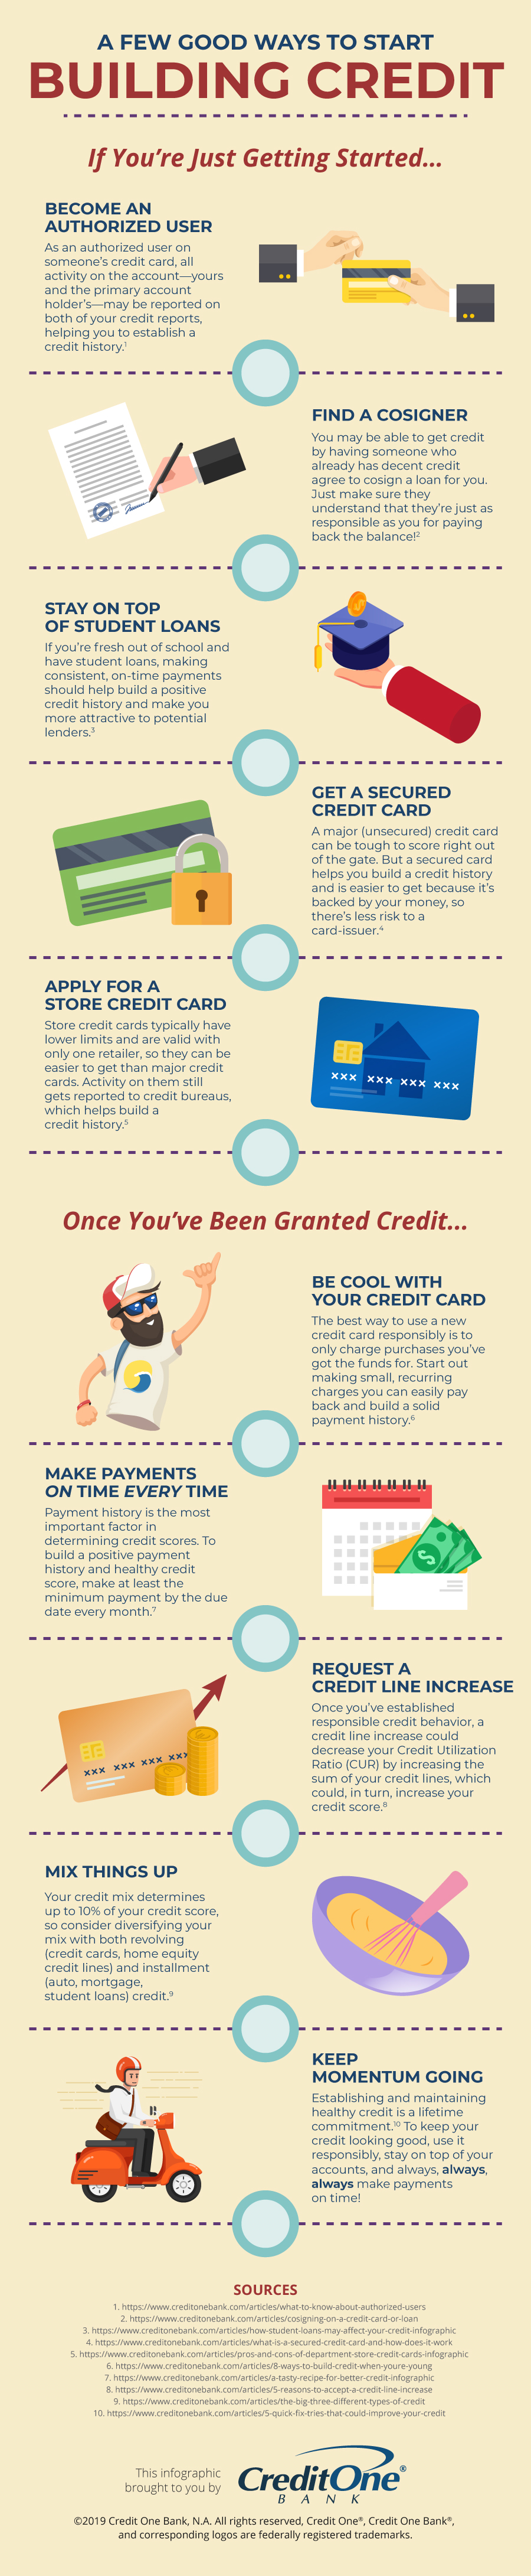 Tips for Building Credit